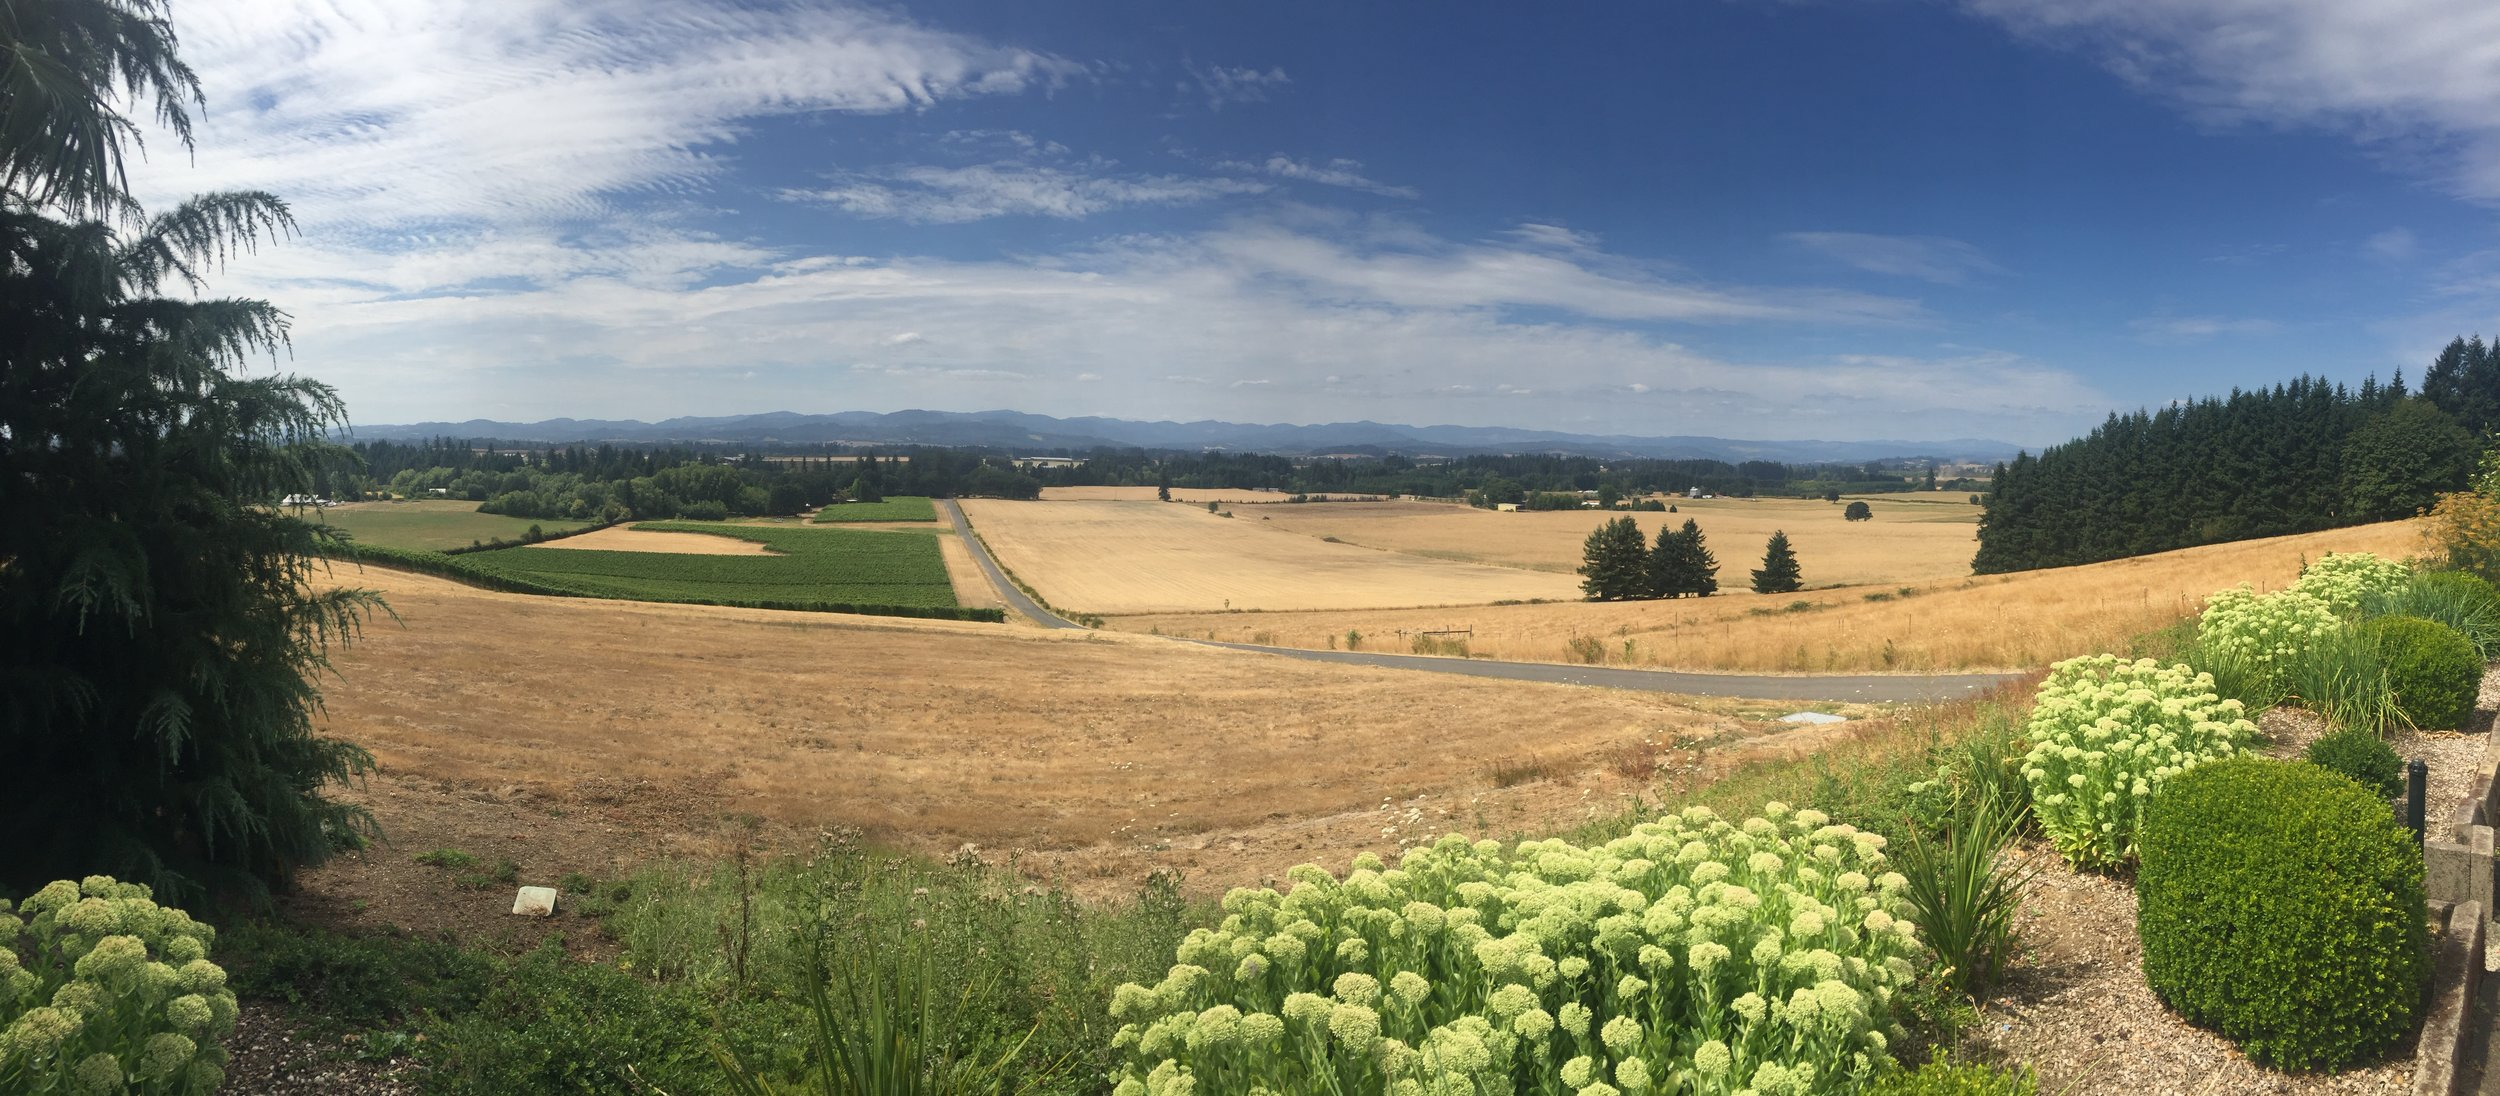 The Willamette Valley, Oregon. Photo by Gabriel Manzo.